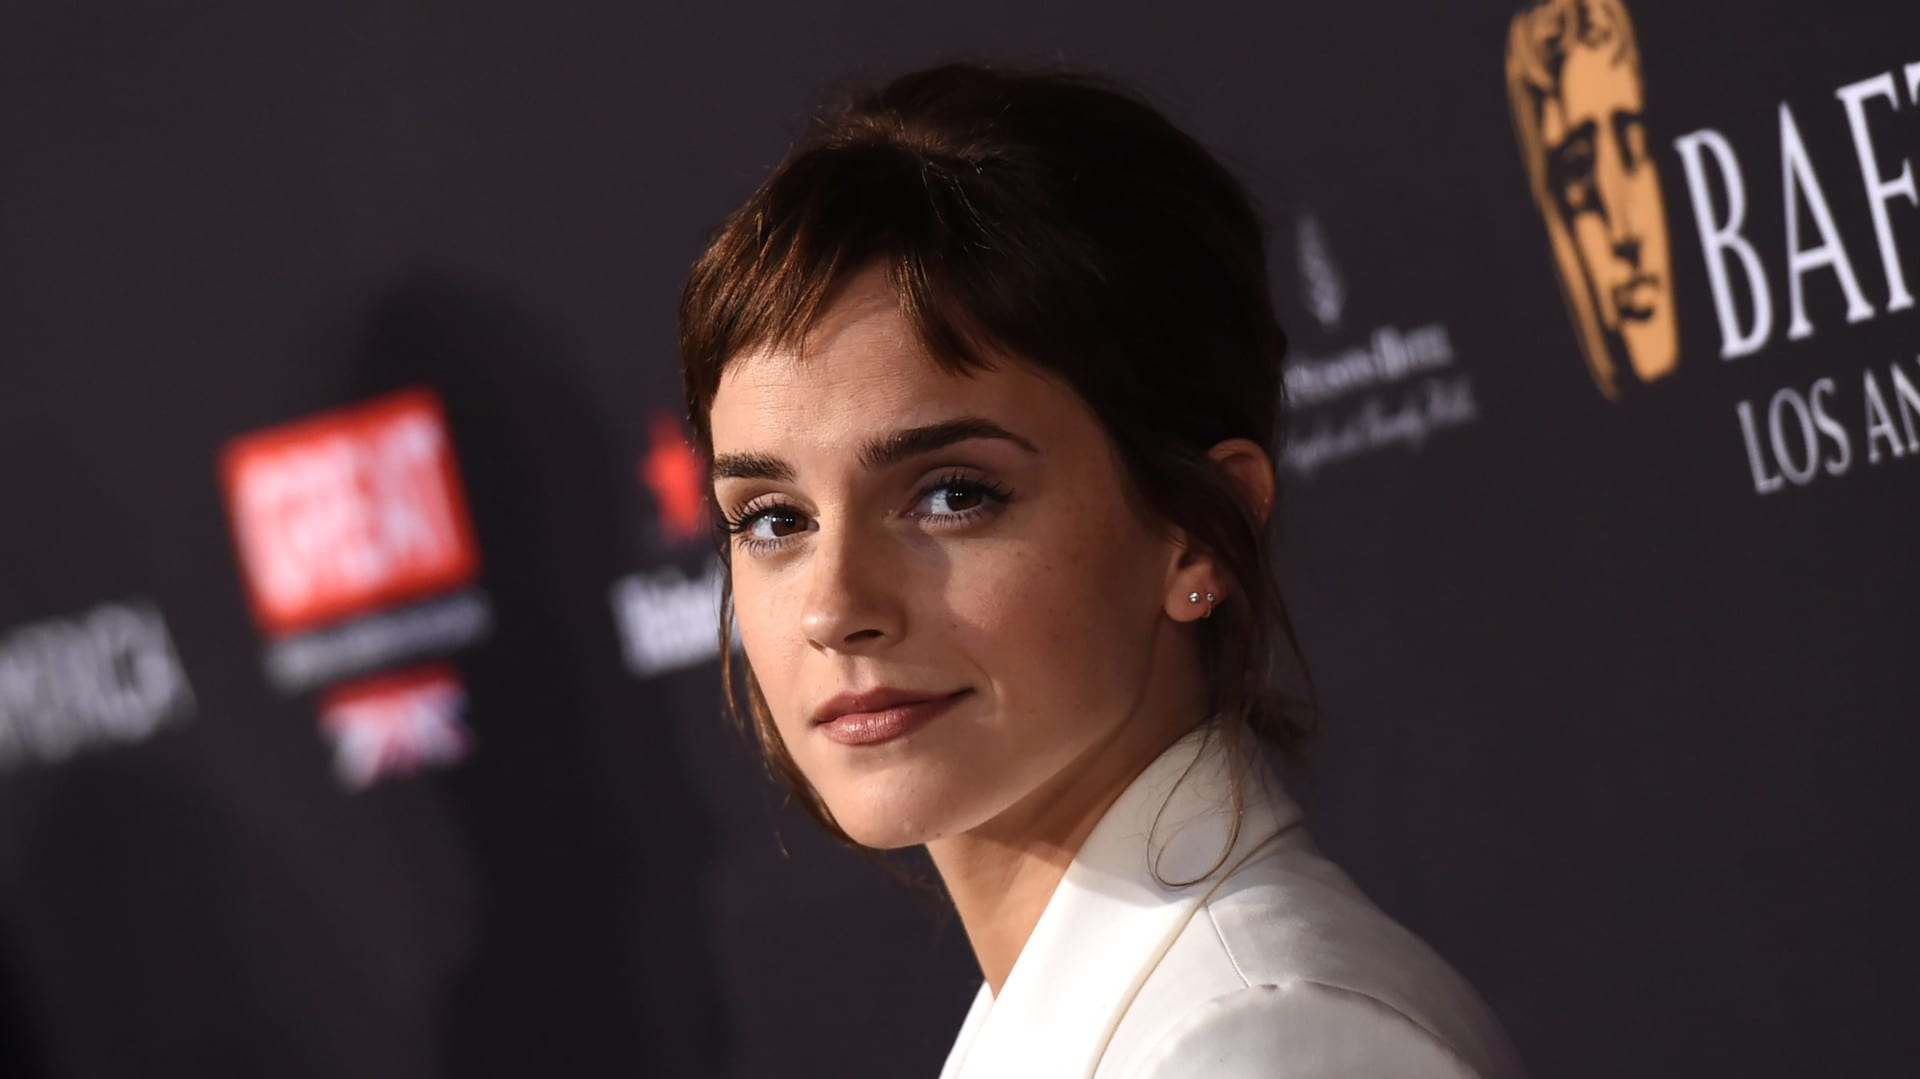 Emma Watson just embraced the fringe and now we want one too